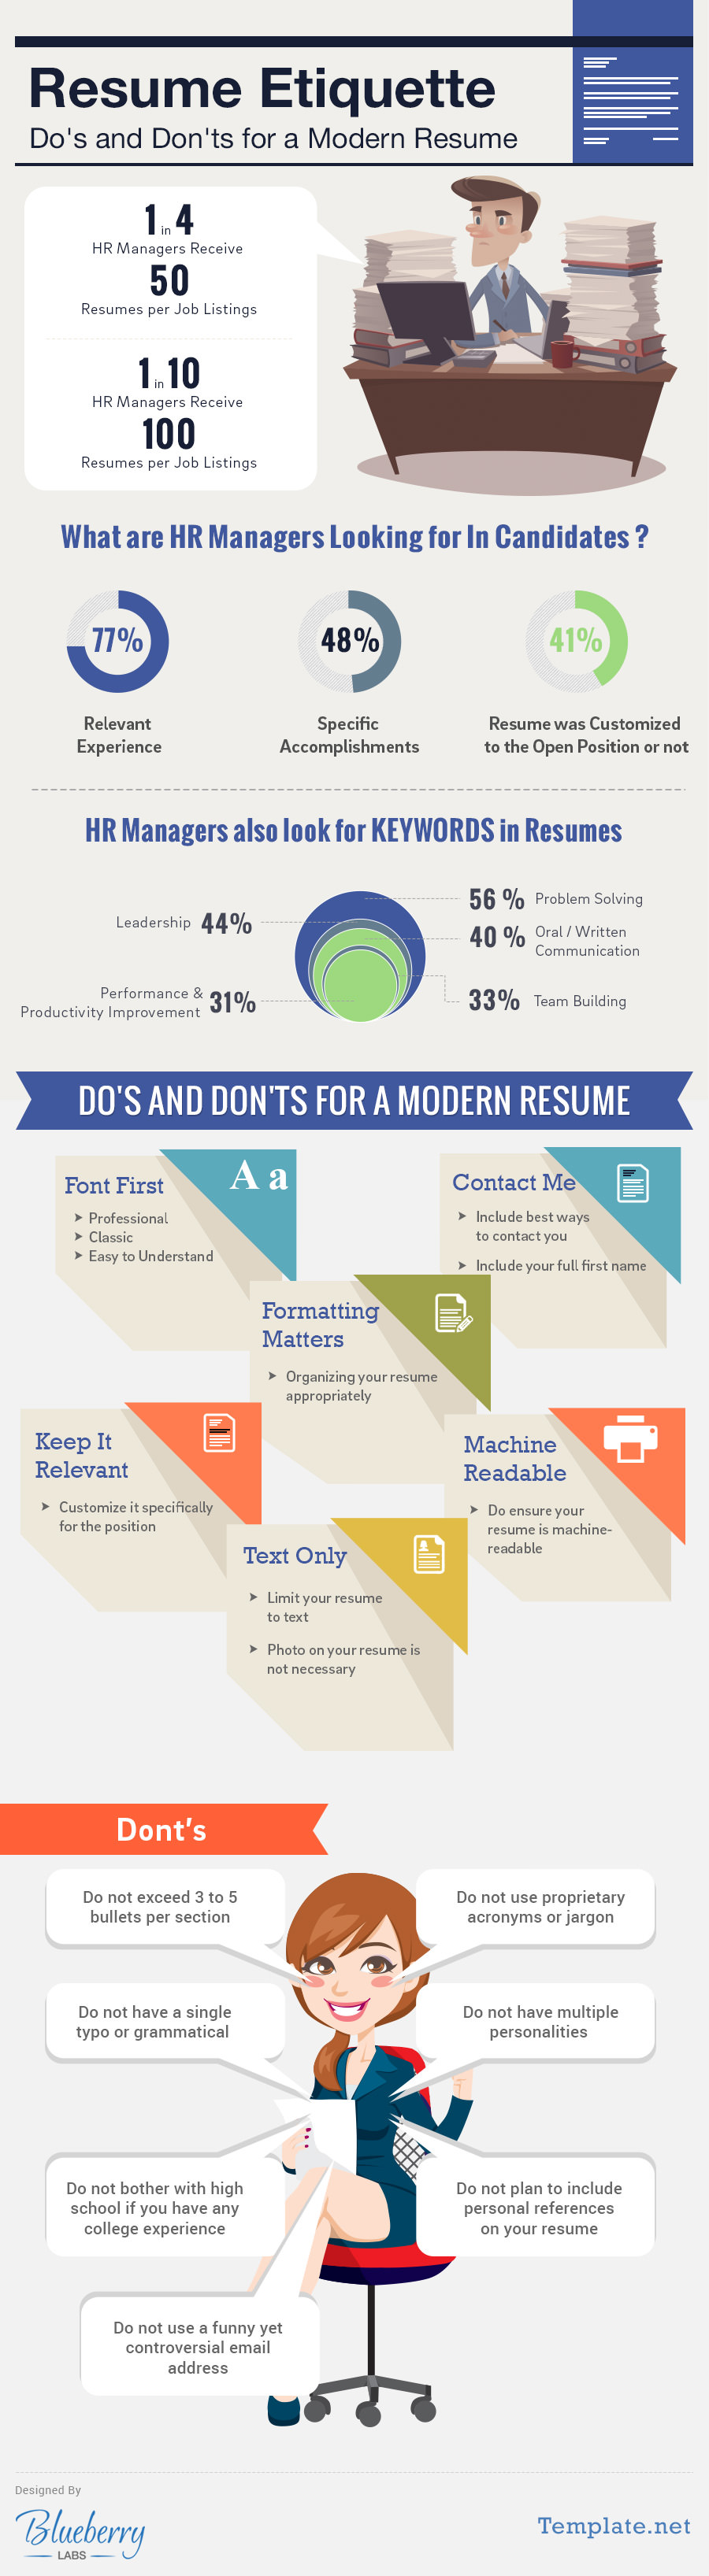 100 Free Resume Builder Resume Etiquette Do's And Don'ts  Ftf  Pinterest  Etiquette